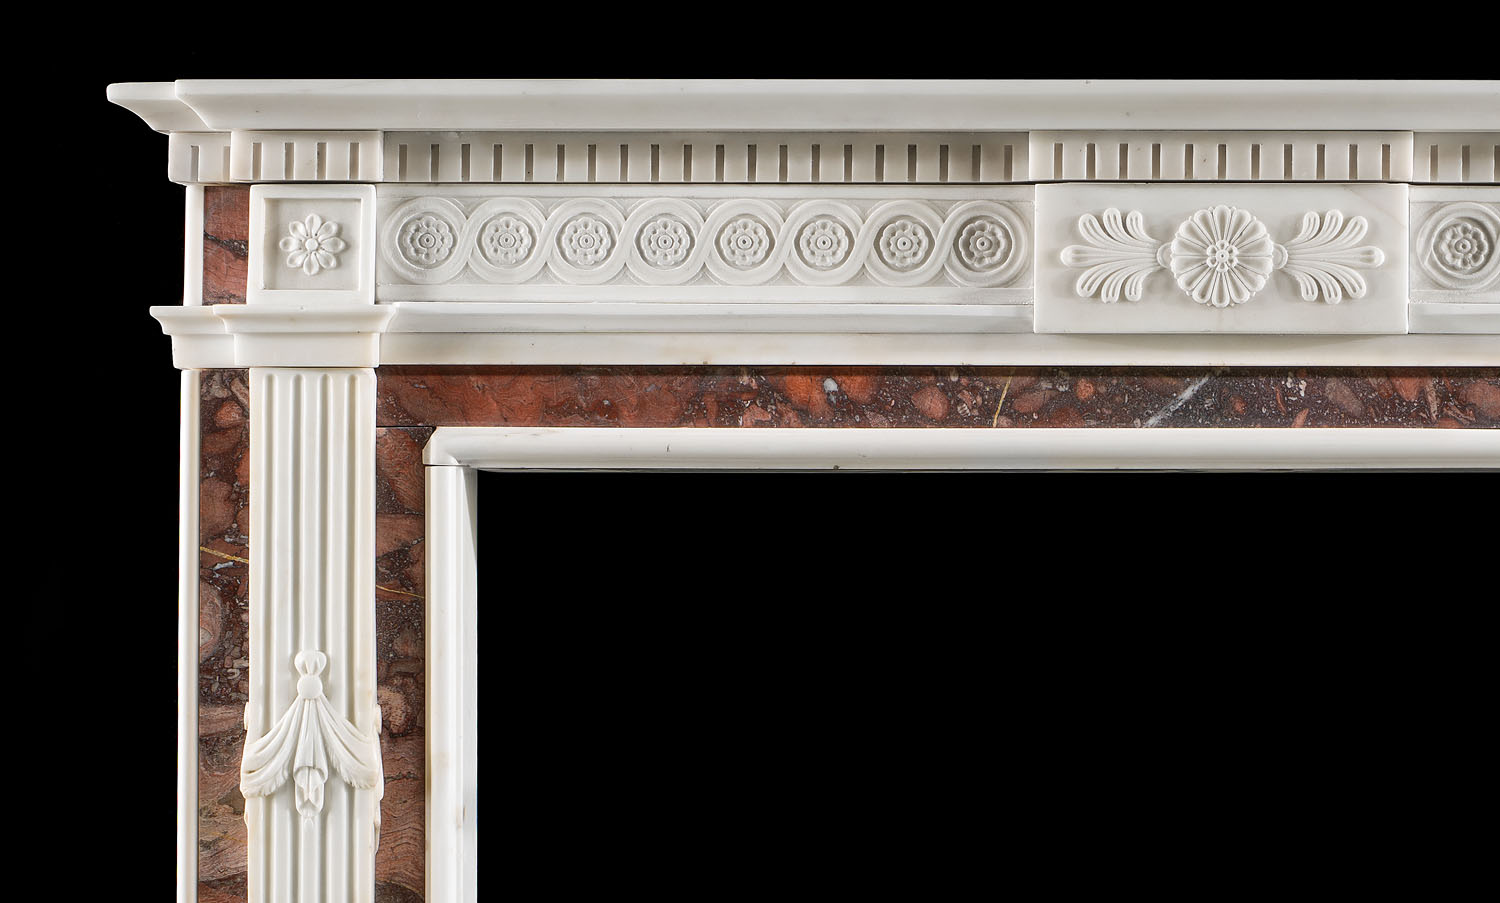 An early 20th century Neopcalssical style fireplace surround.